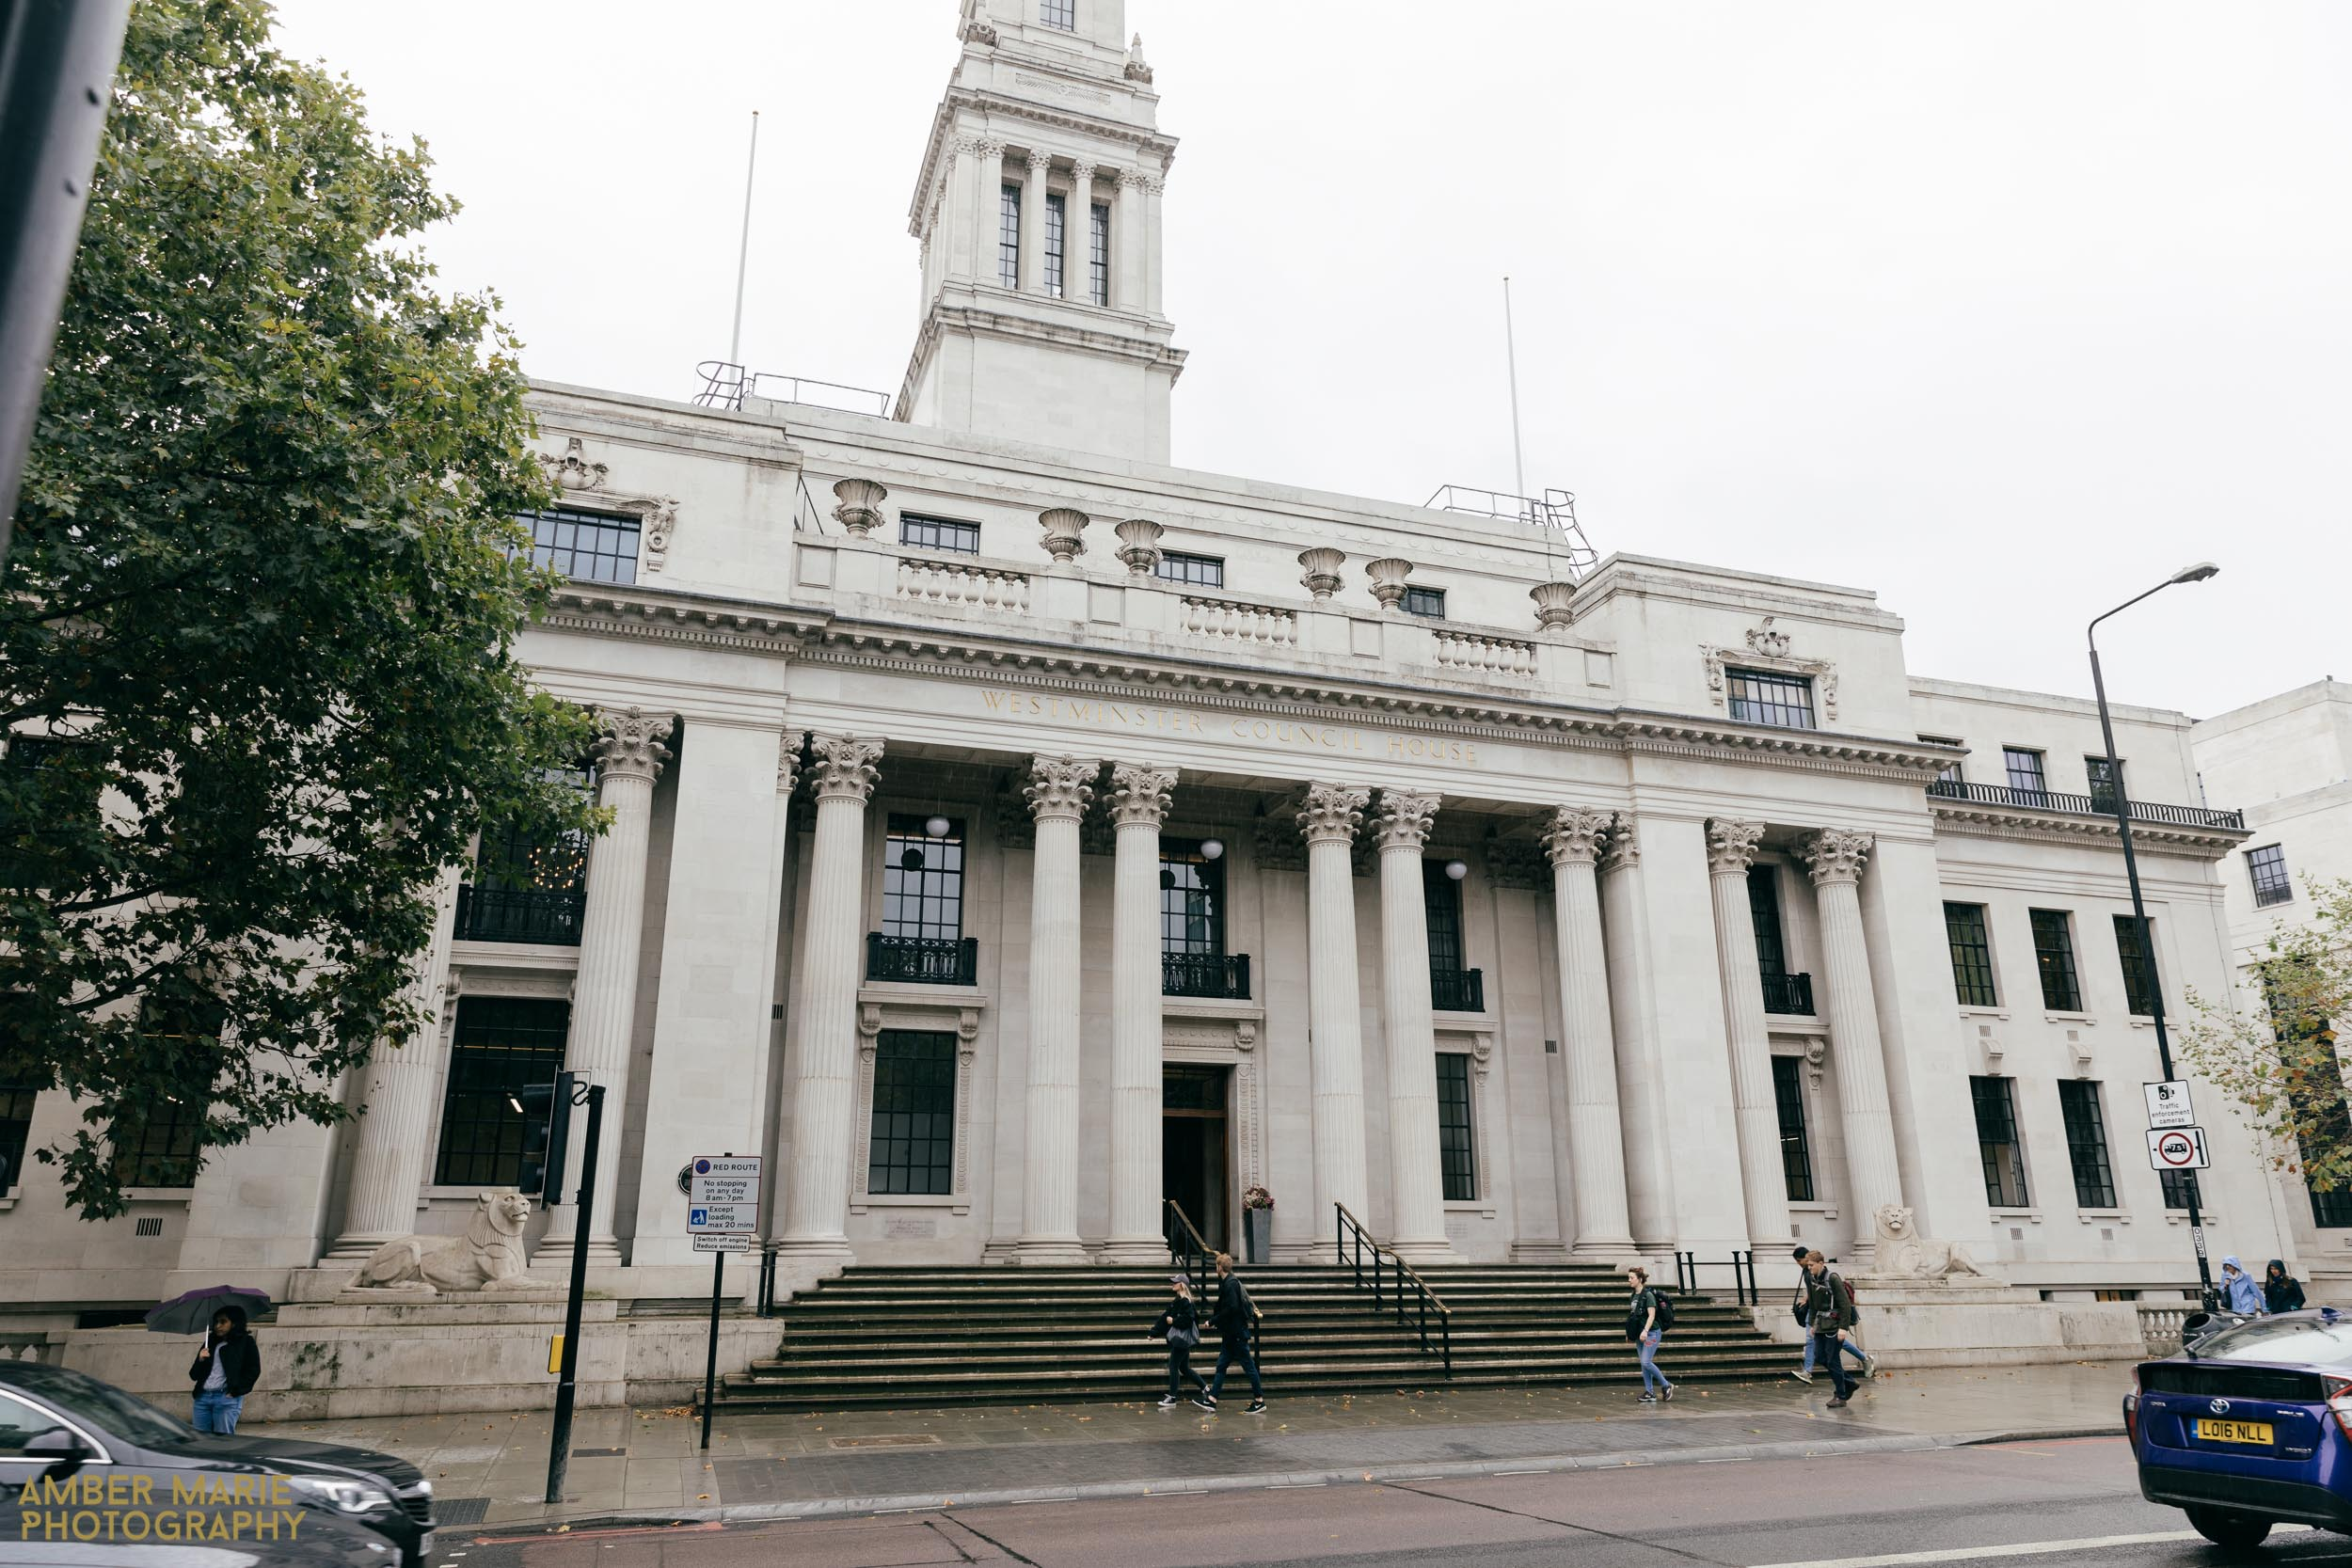 Old Marylebone Town Hall